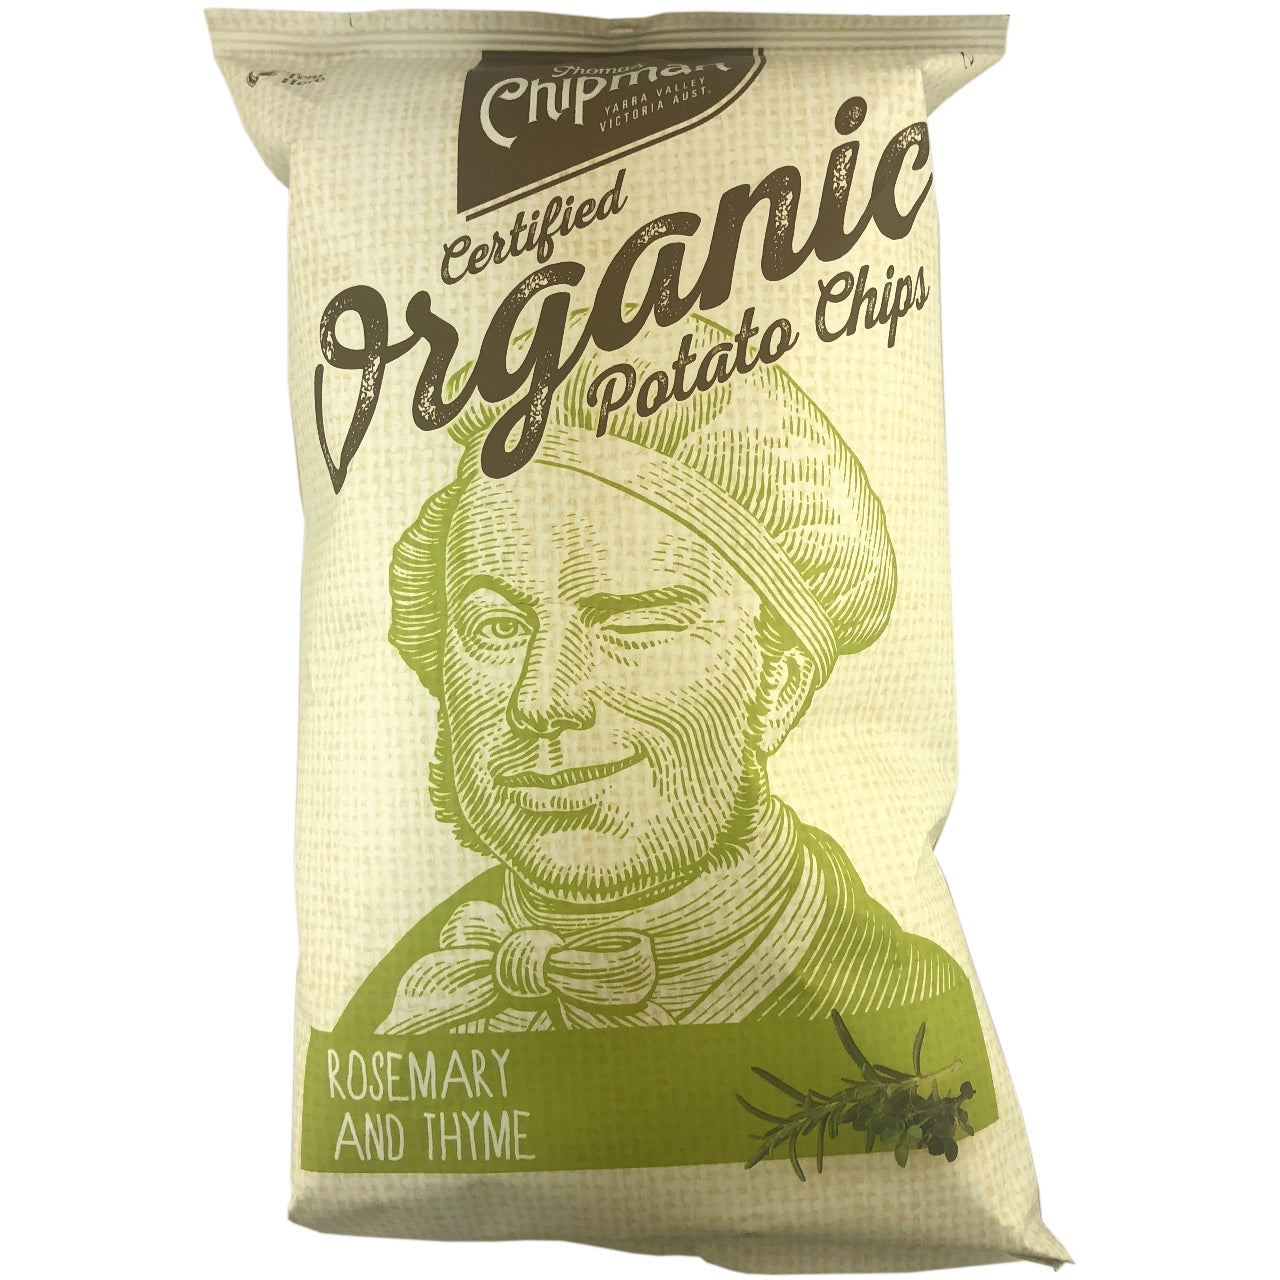 Thomas Chipman Rosemary & Thyme Potato Chips